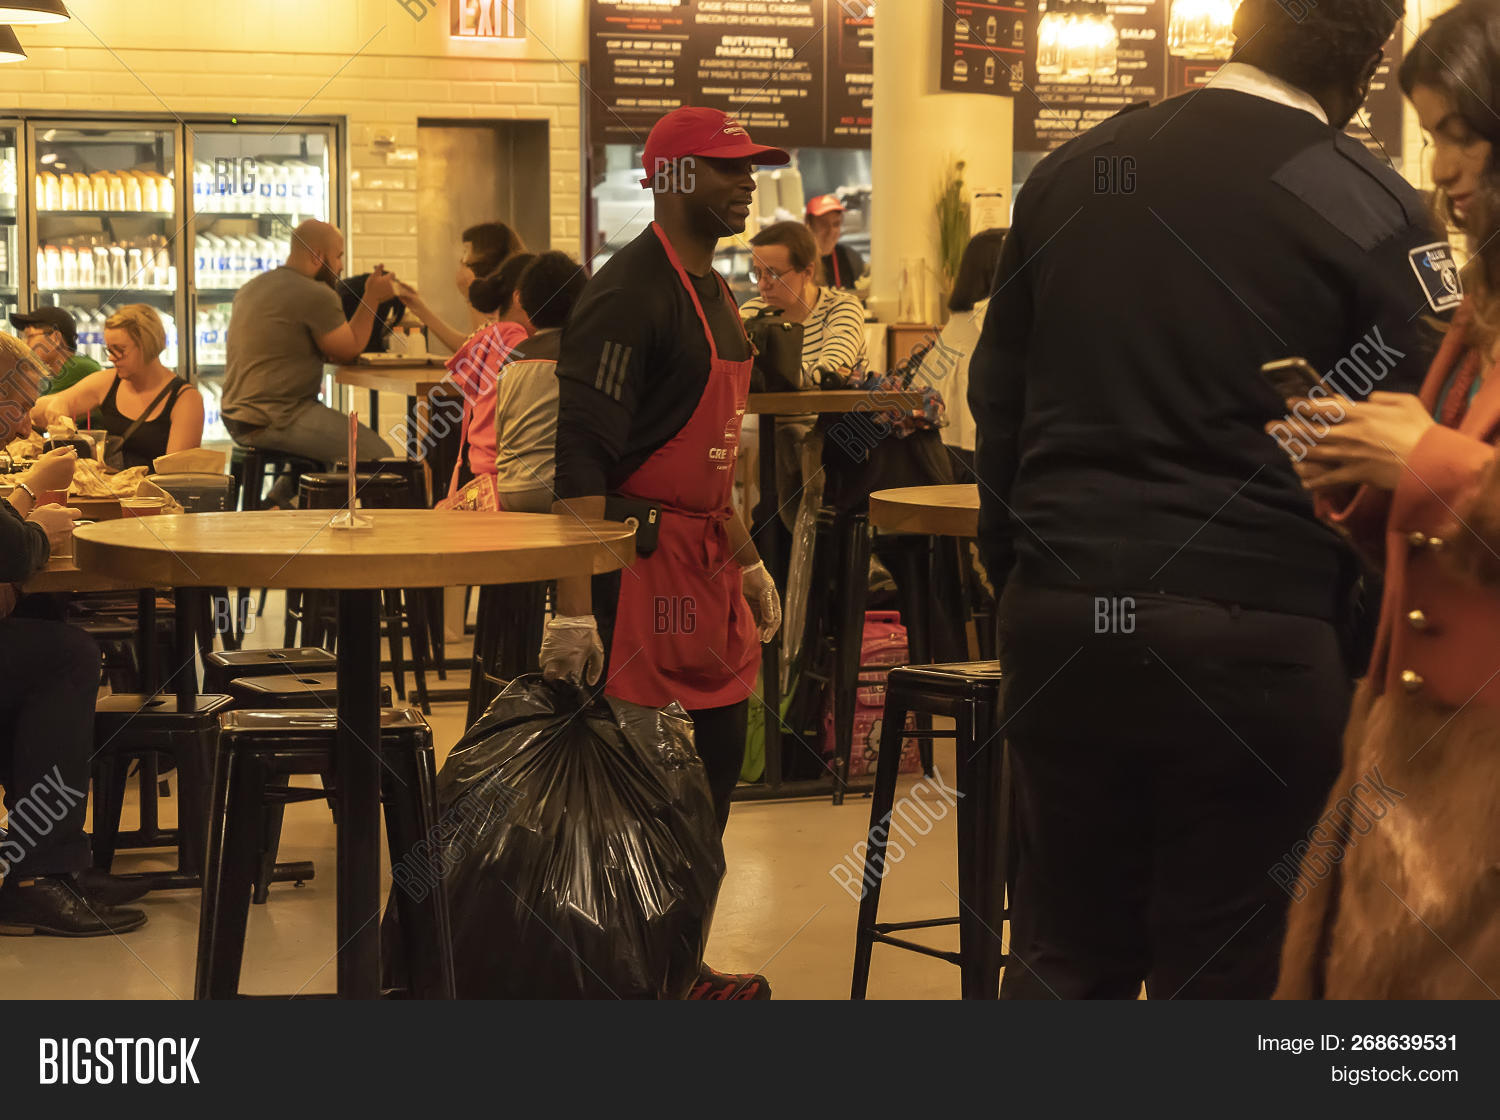 Chelsea Market, New Image & Photo (Free Trial) | Bigstock